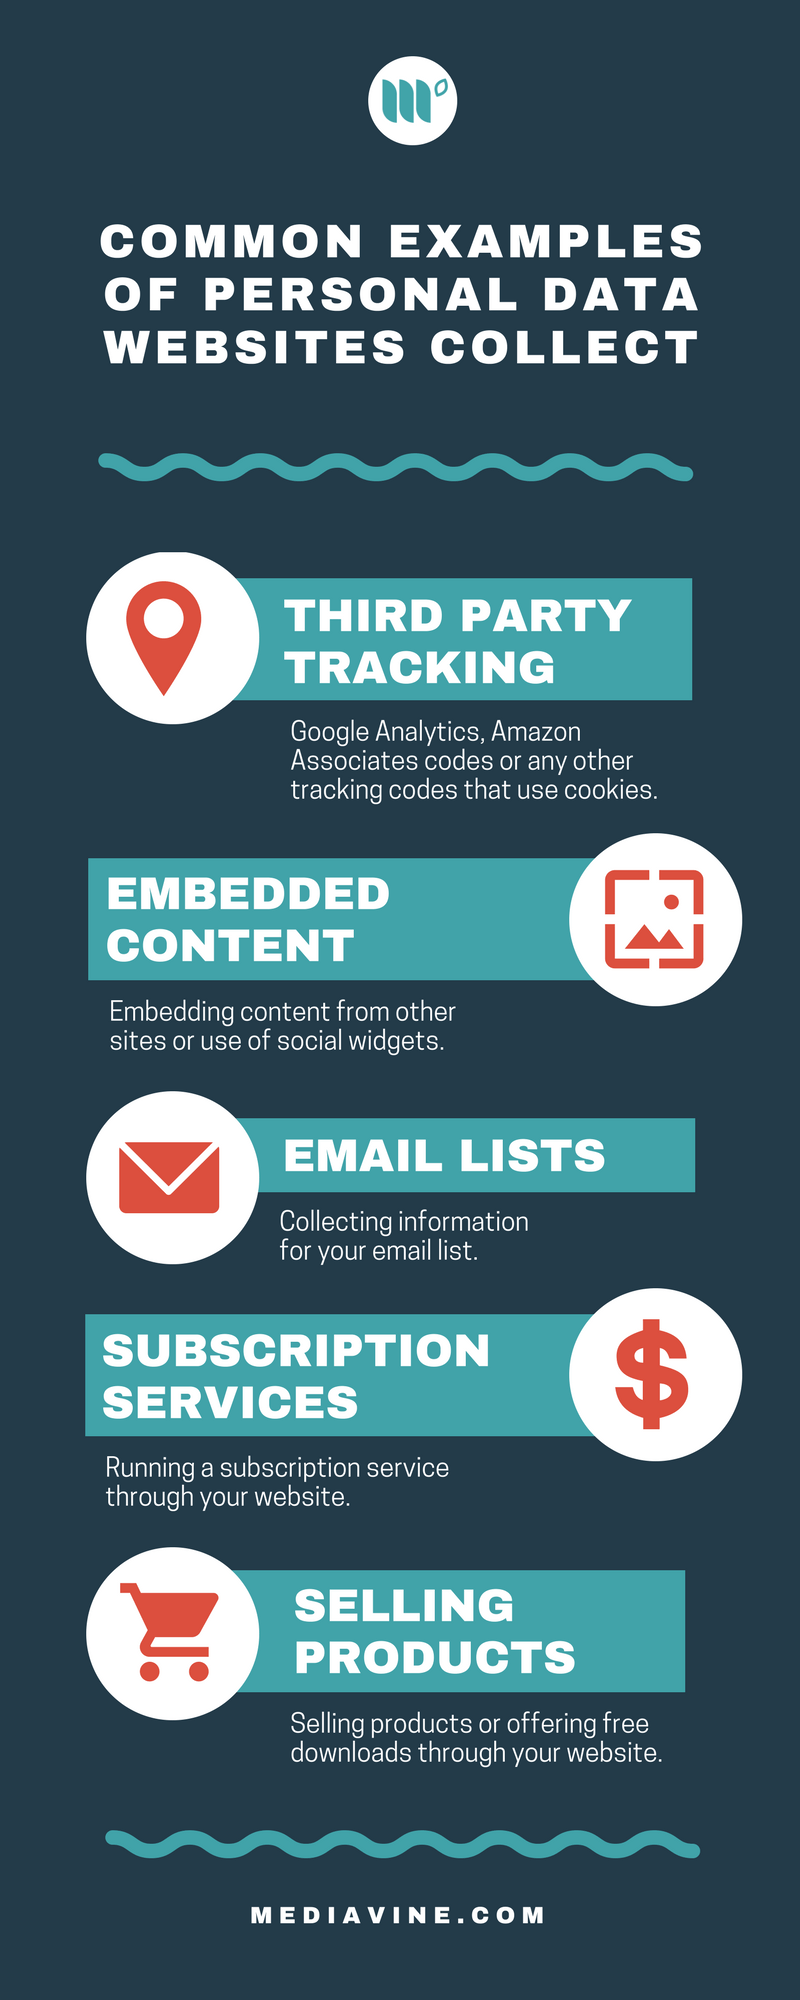 Common examples of personal data website collect: Third party tracking, embedded content, email lists, subscription services, and selling products.